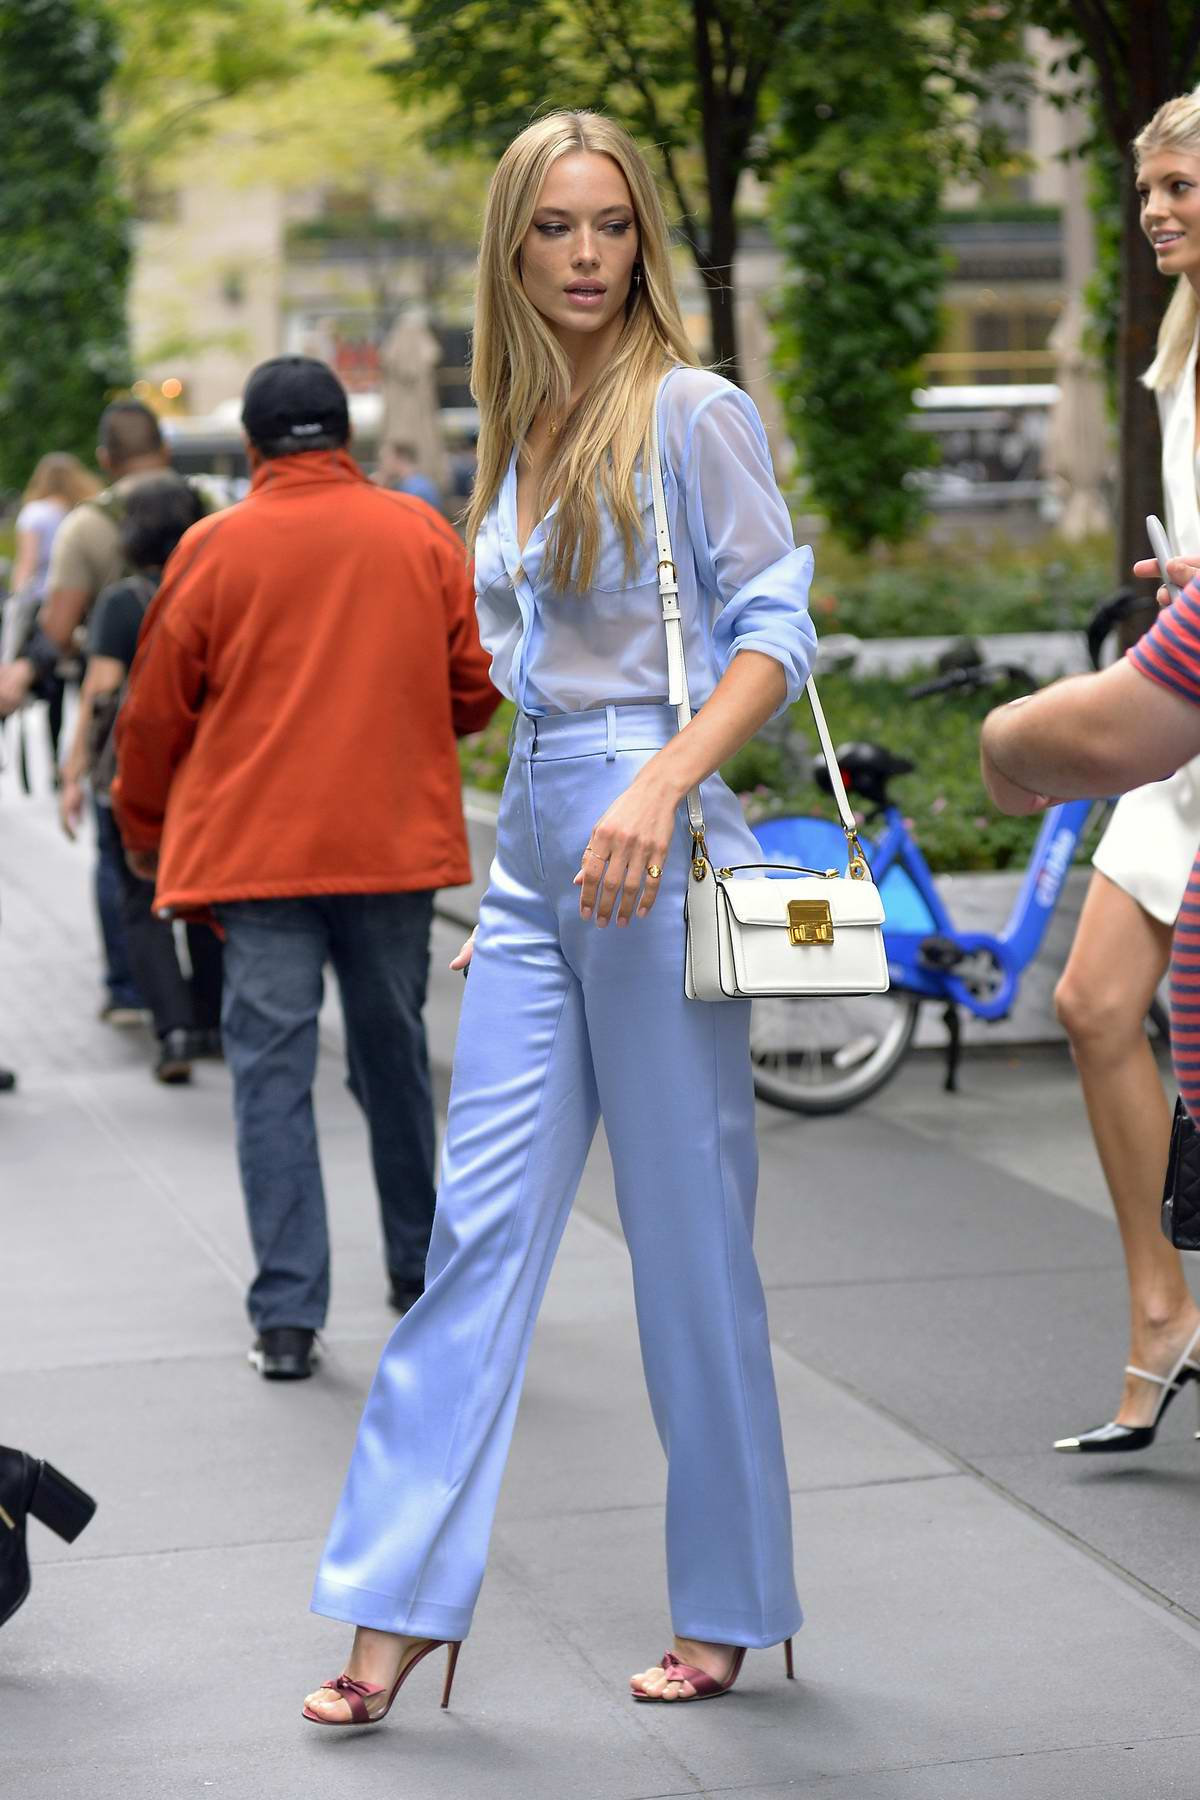 Hannah Ferguson rocks a blue sheer top and blue pants while promoting 'Model Squad' at SiriusXM in New York City